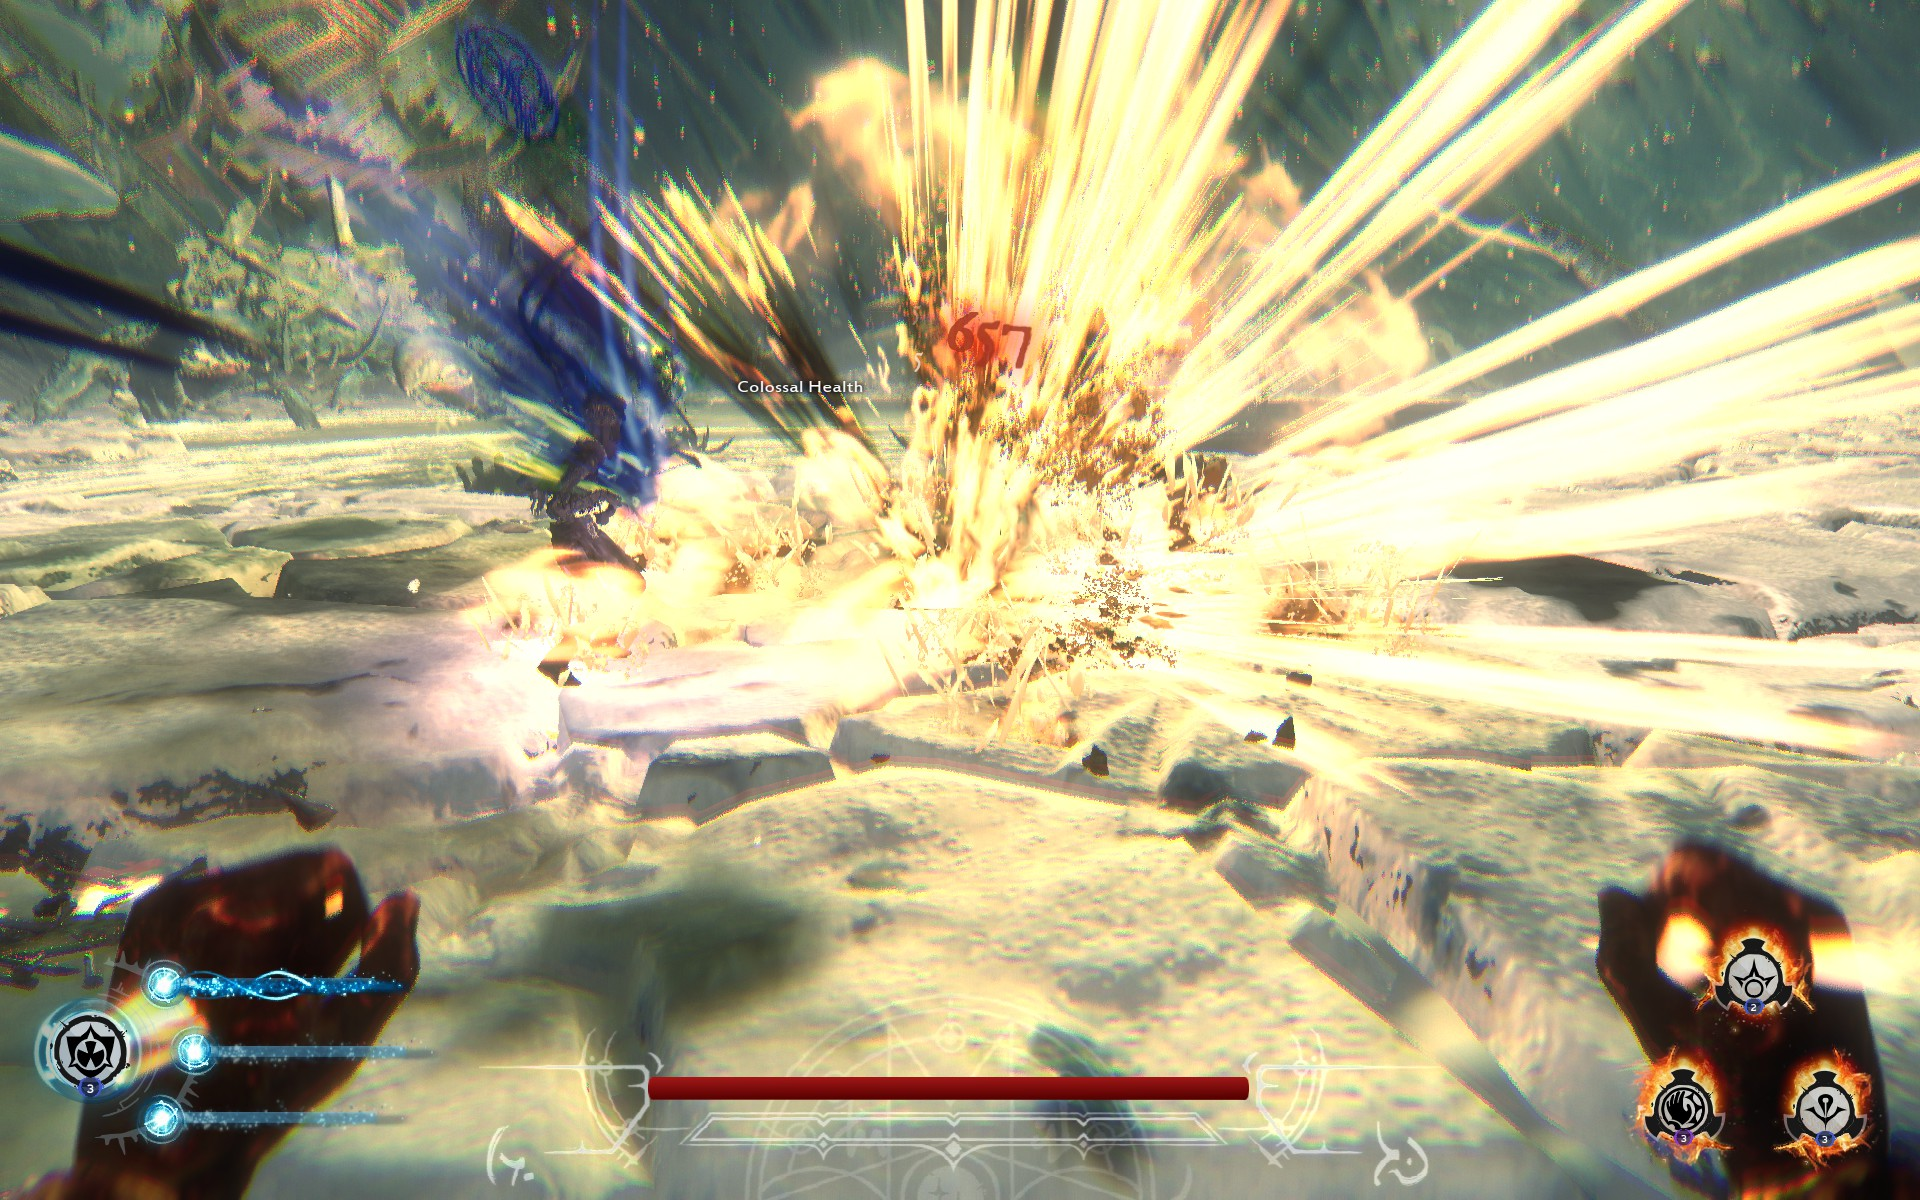 Blowing things up in Lichdom: Battlemage just looks good. The number here isn't super impressive, but at least the visuals make me feel like I'm doing a good job!